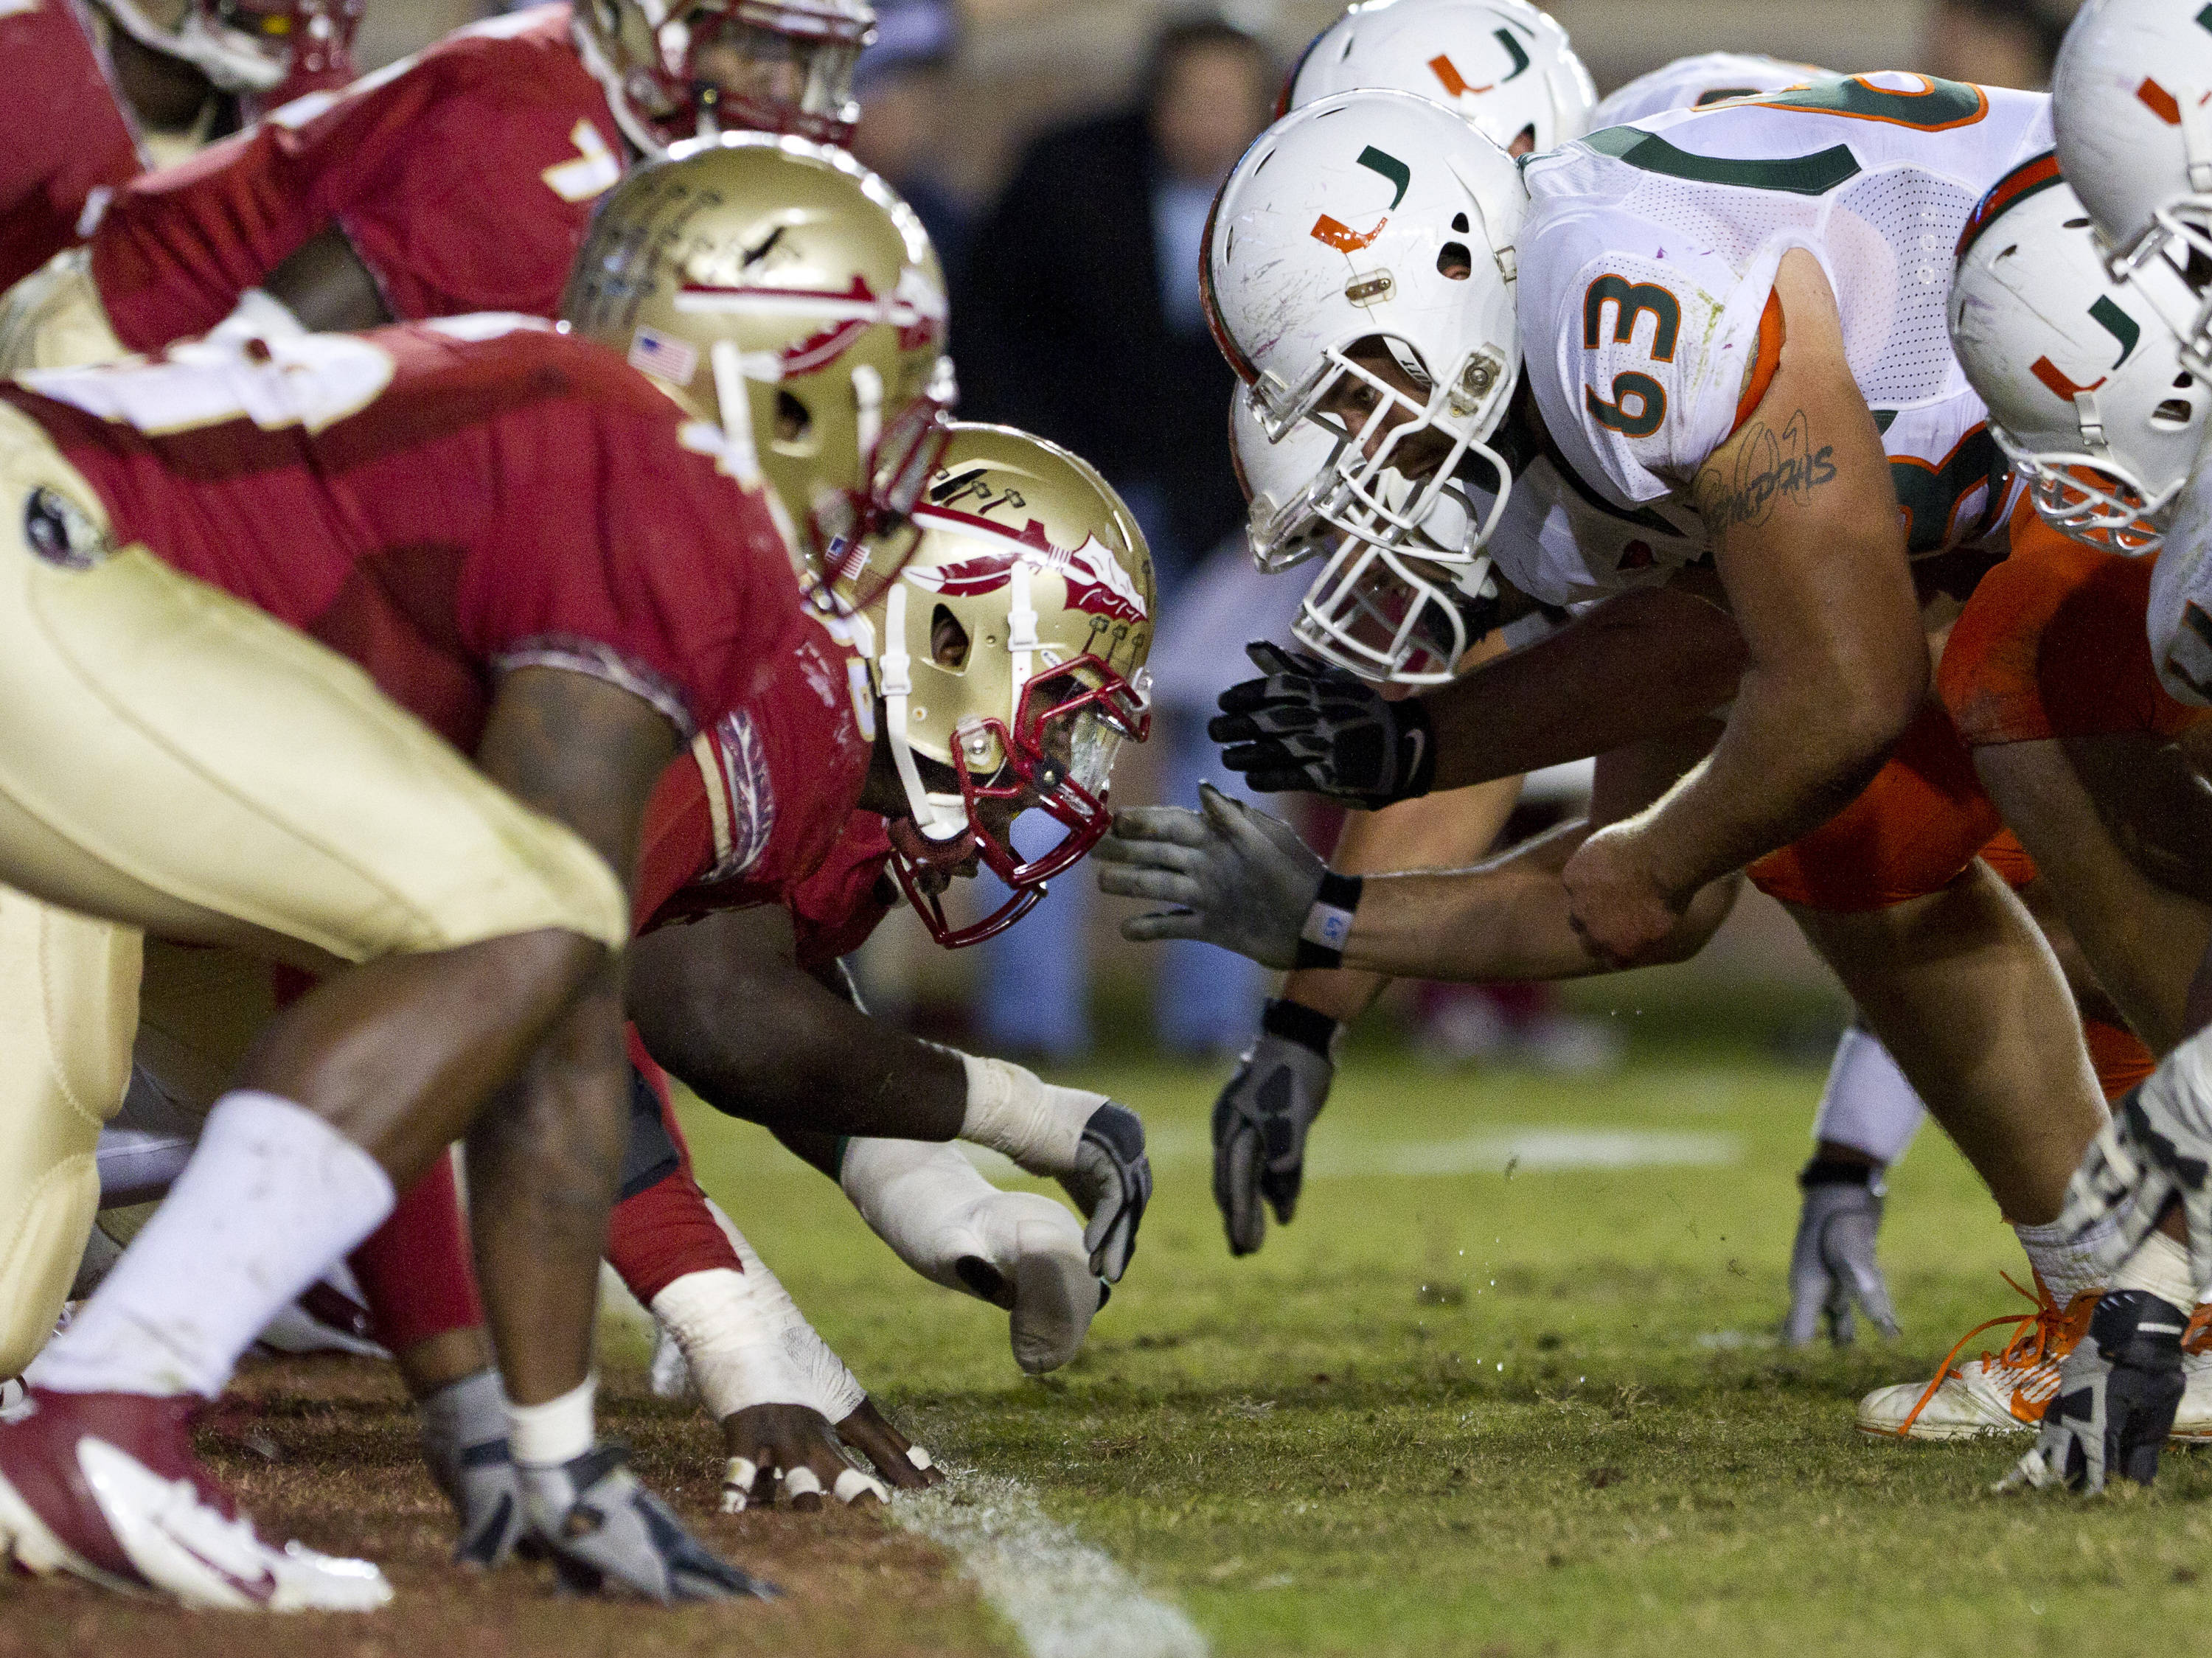 FSU's defense tries to stop a Miami touchdown on the goal line during the football game against Miami on November 12, 2011.